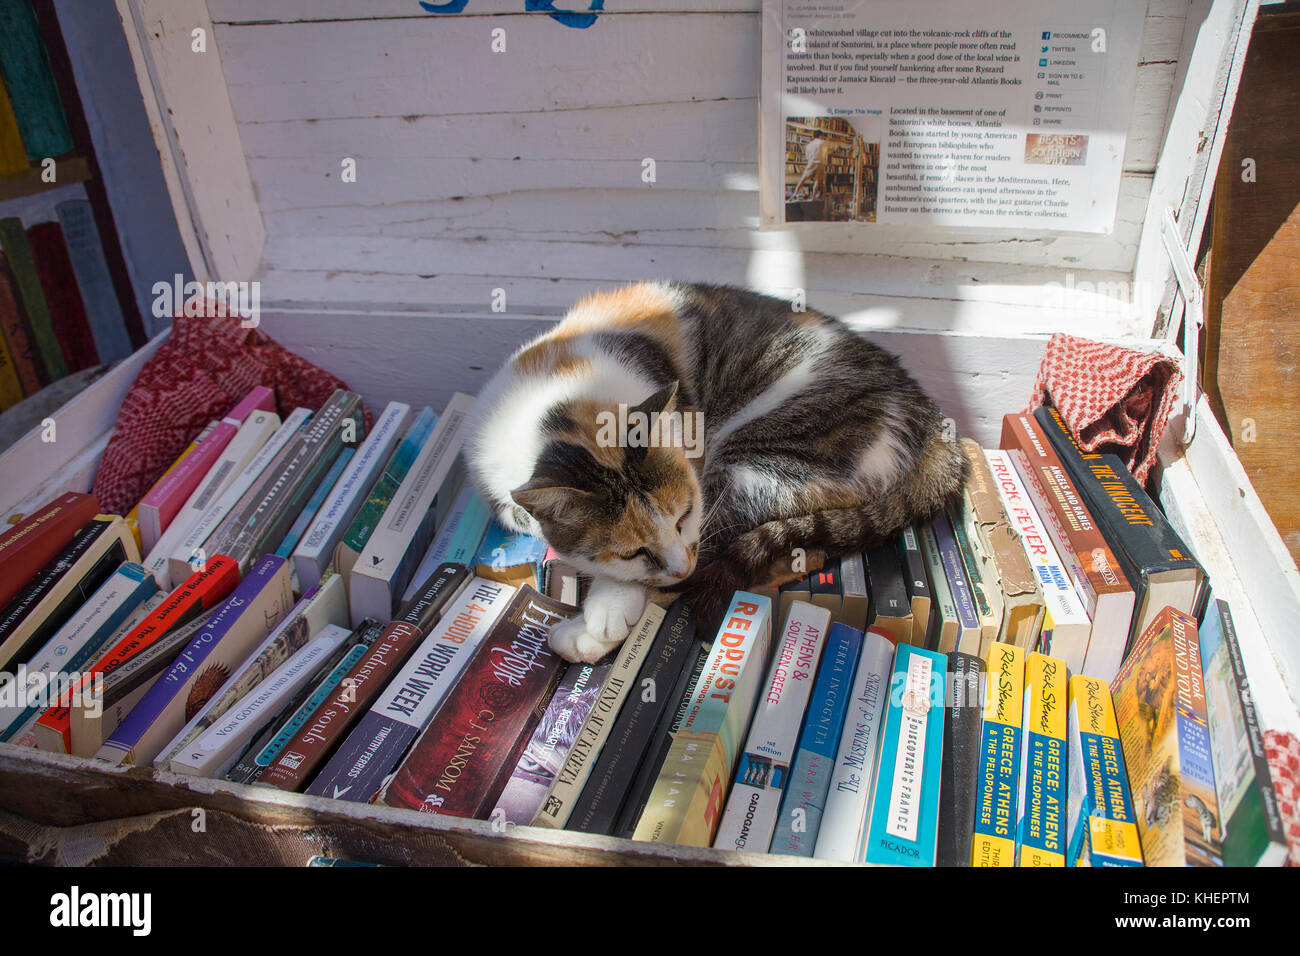 Cat sleeps on books in a suit case, shop at Oia, Santorin island, Cyclades, Aegean, Greece - Stock Image